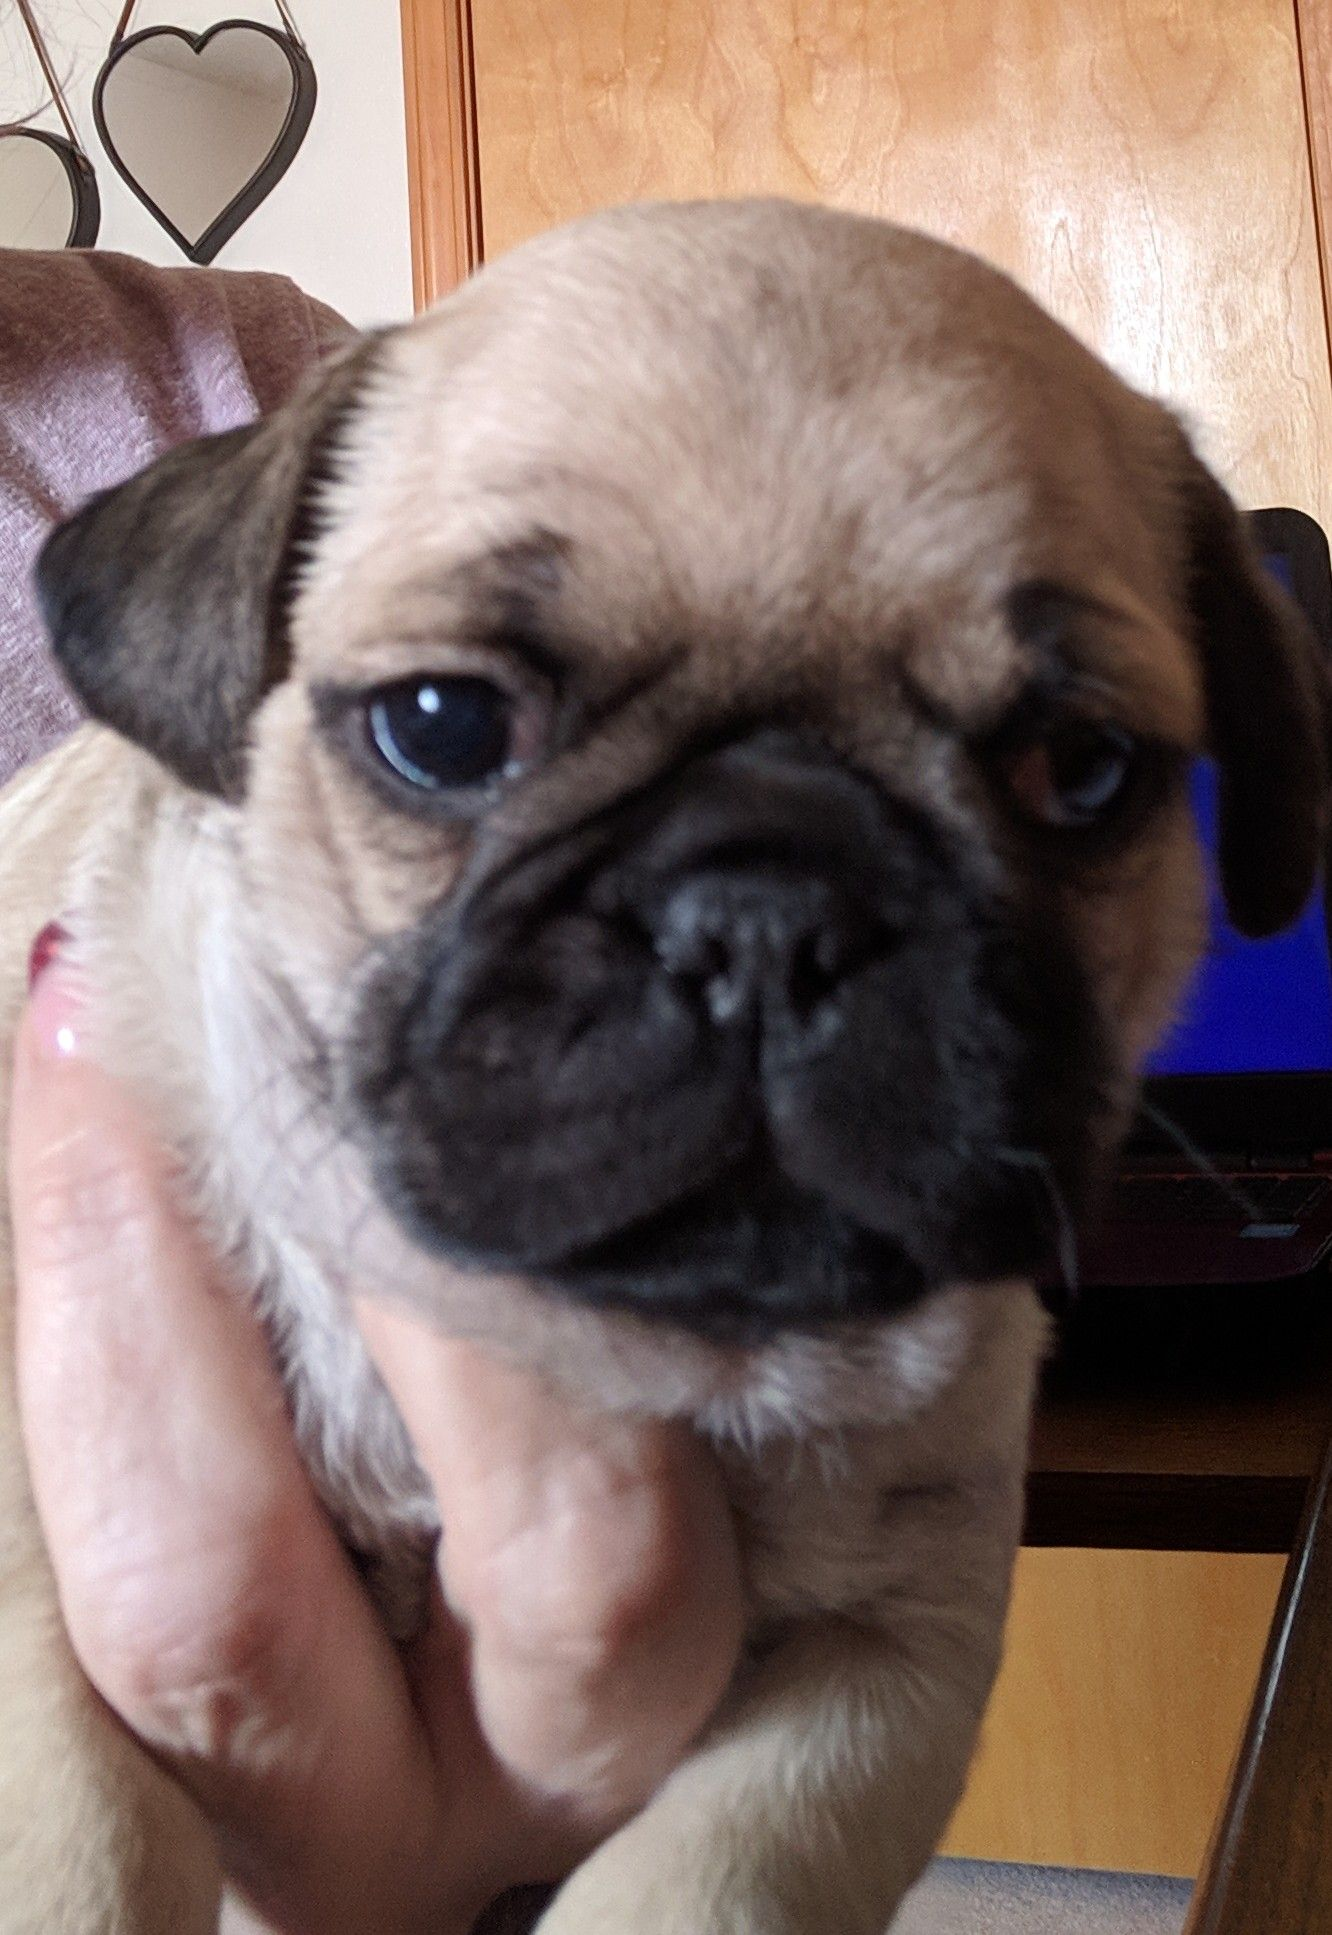 Otis Spunkmeyer a male ACA Pug puppy for sale in Buffalo